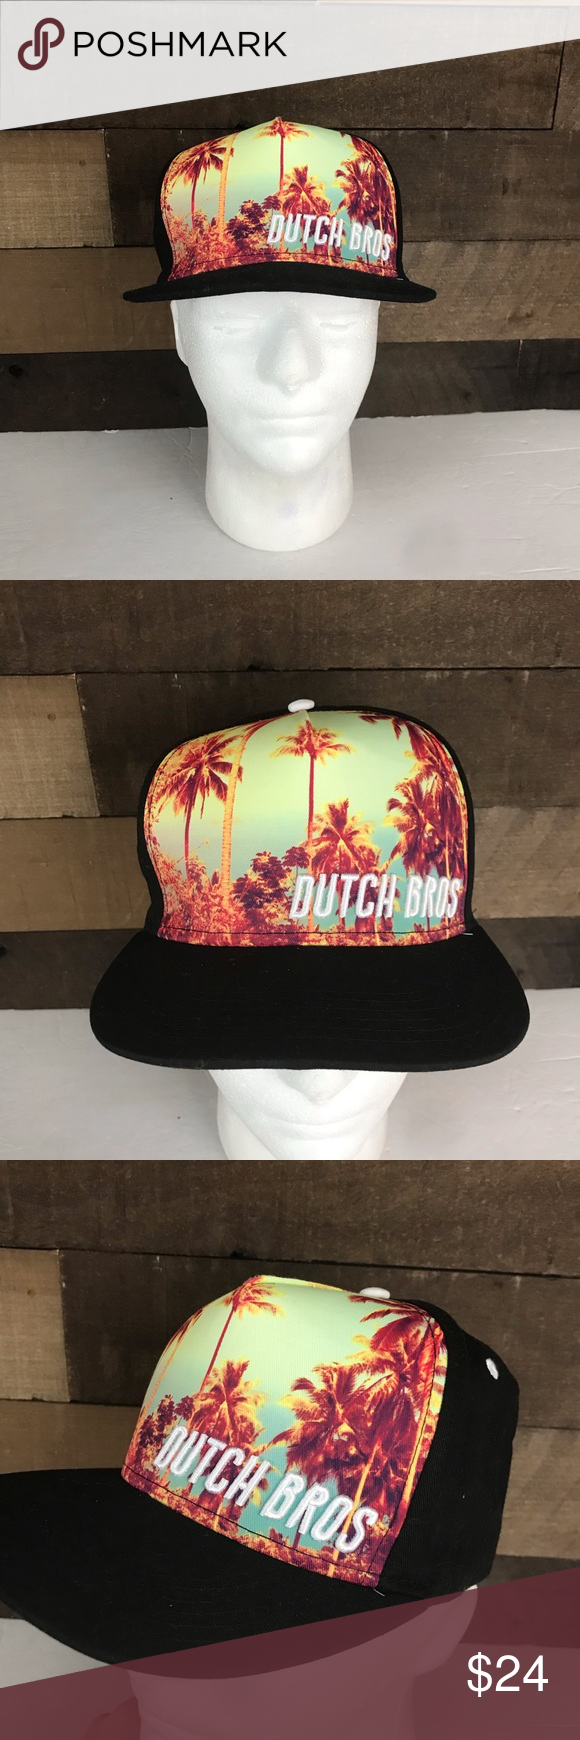 Dutch Bros coffee palm tree Snapback hat Dutch Bros Brothers Coffee Logo Palm Tree Black Flat Bill Snap Back Cap Hat Rare. Condition is Pre-owned very good please see photos.  Shipped with USPS First Class Package. Dutch Bros Accessories Hats #dutchbros Dutch Bros coffee palm tree Snapback hat Dutch Bros Brothers Coffee Logo Palm Tree Black Flat Bill Snap Back Cap Hat Rare. Condition is Pre-owned very good please see photos.  Shipped with USPS First Class Package. Dutch Bros Accessories Hats #dutchbros